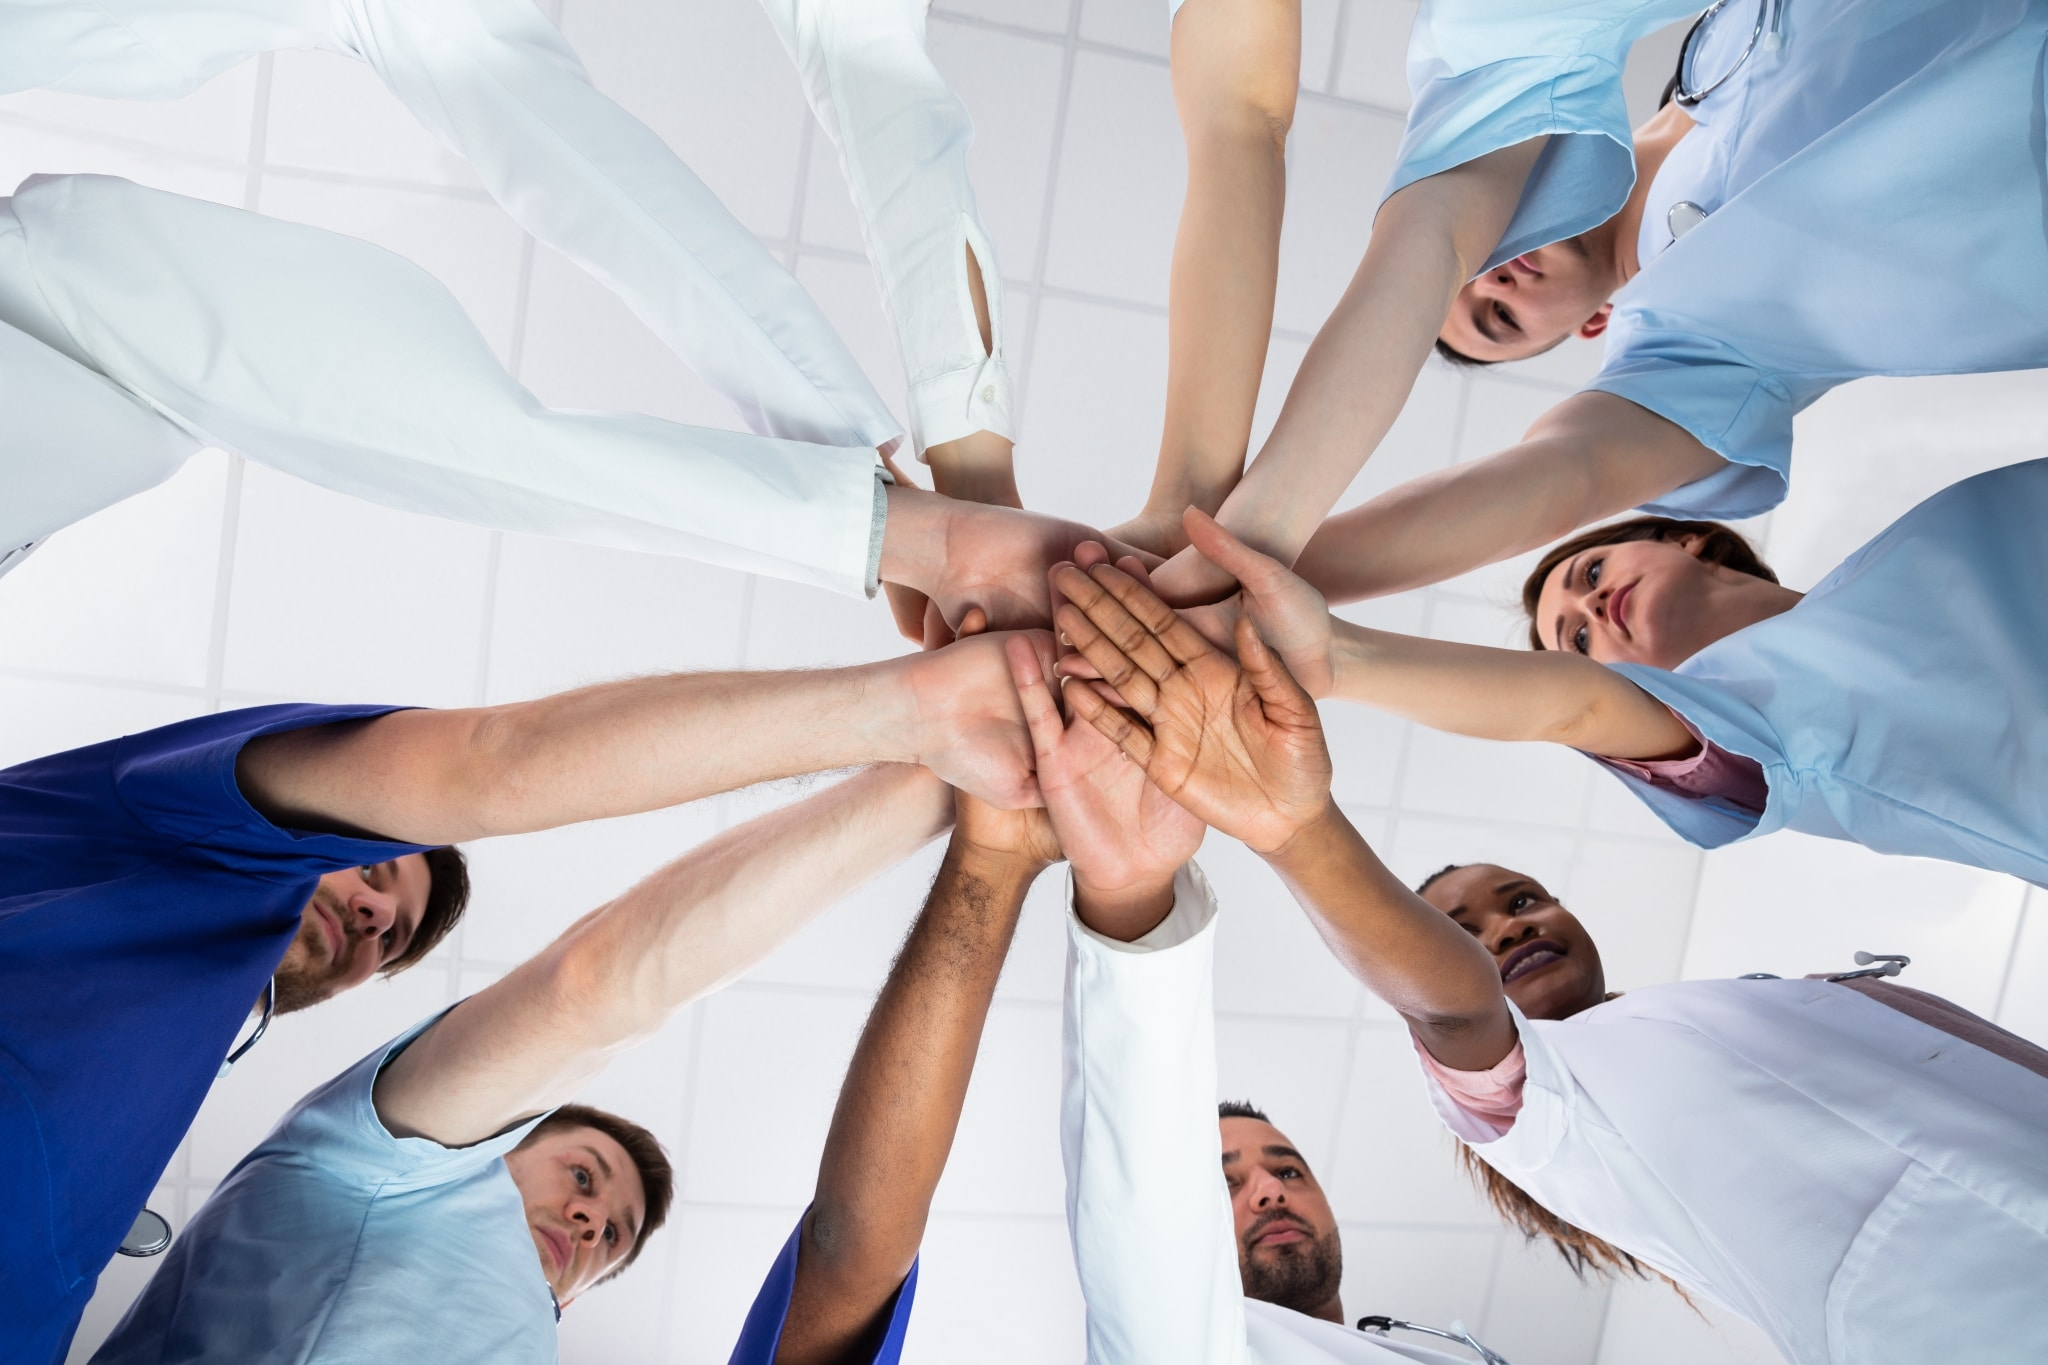 Healthcare team touching hands